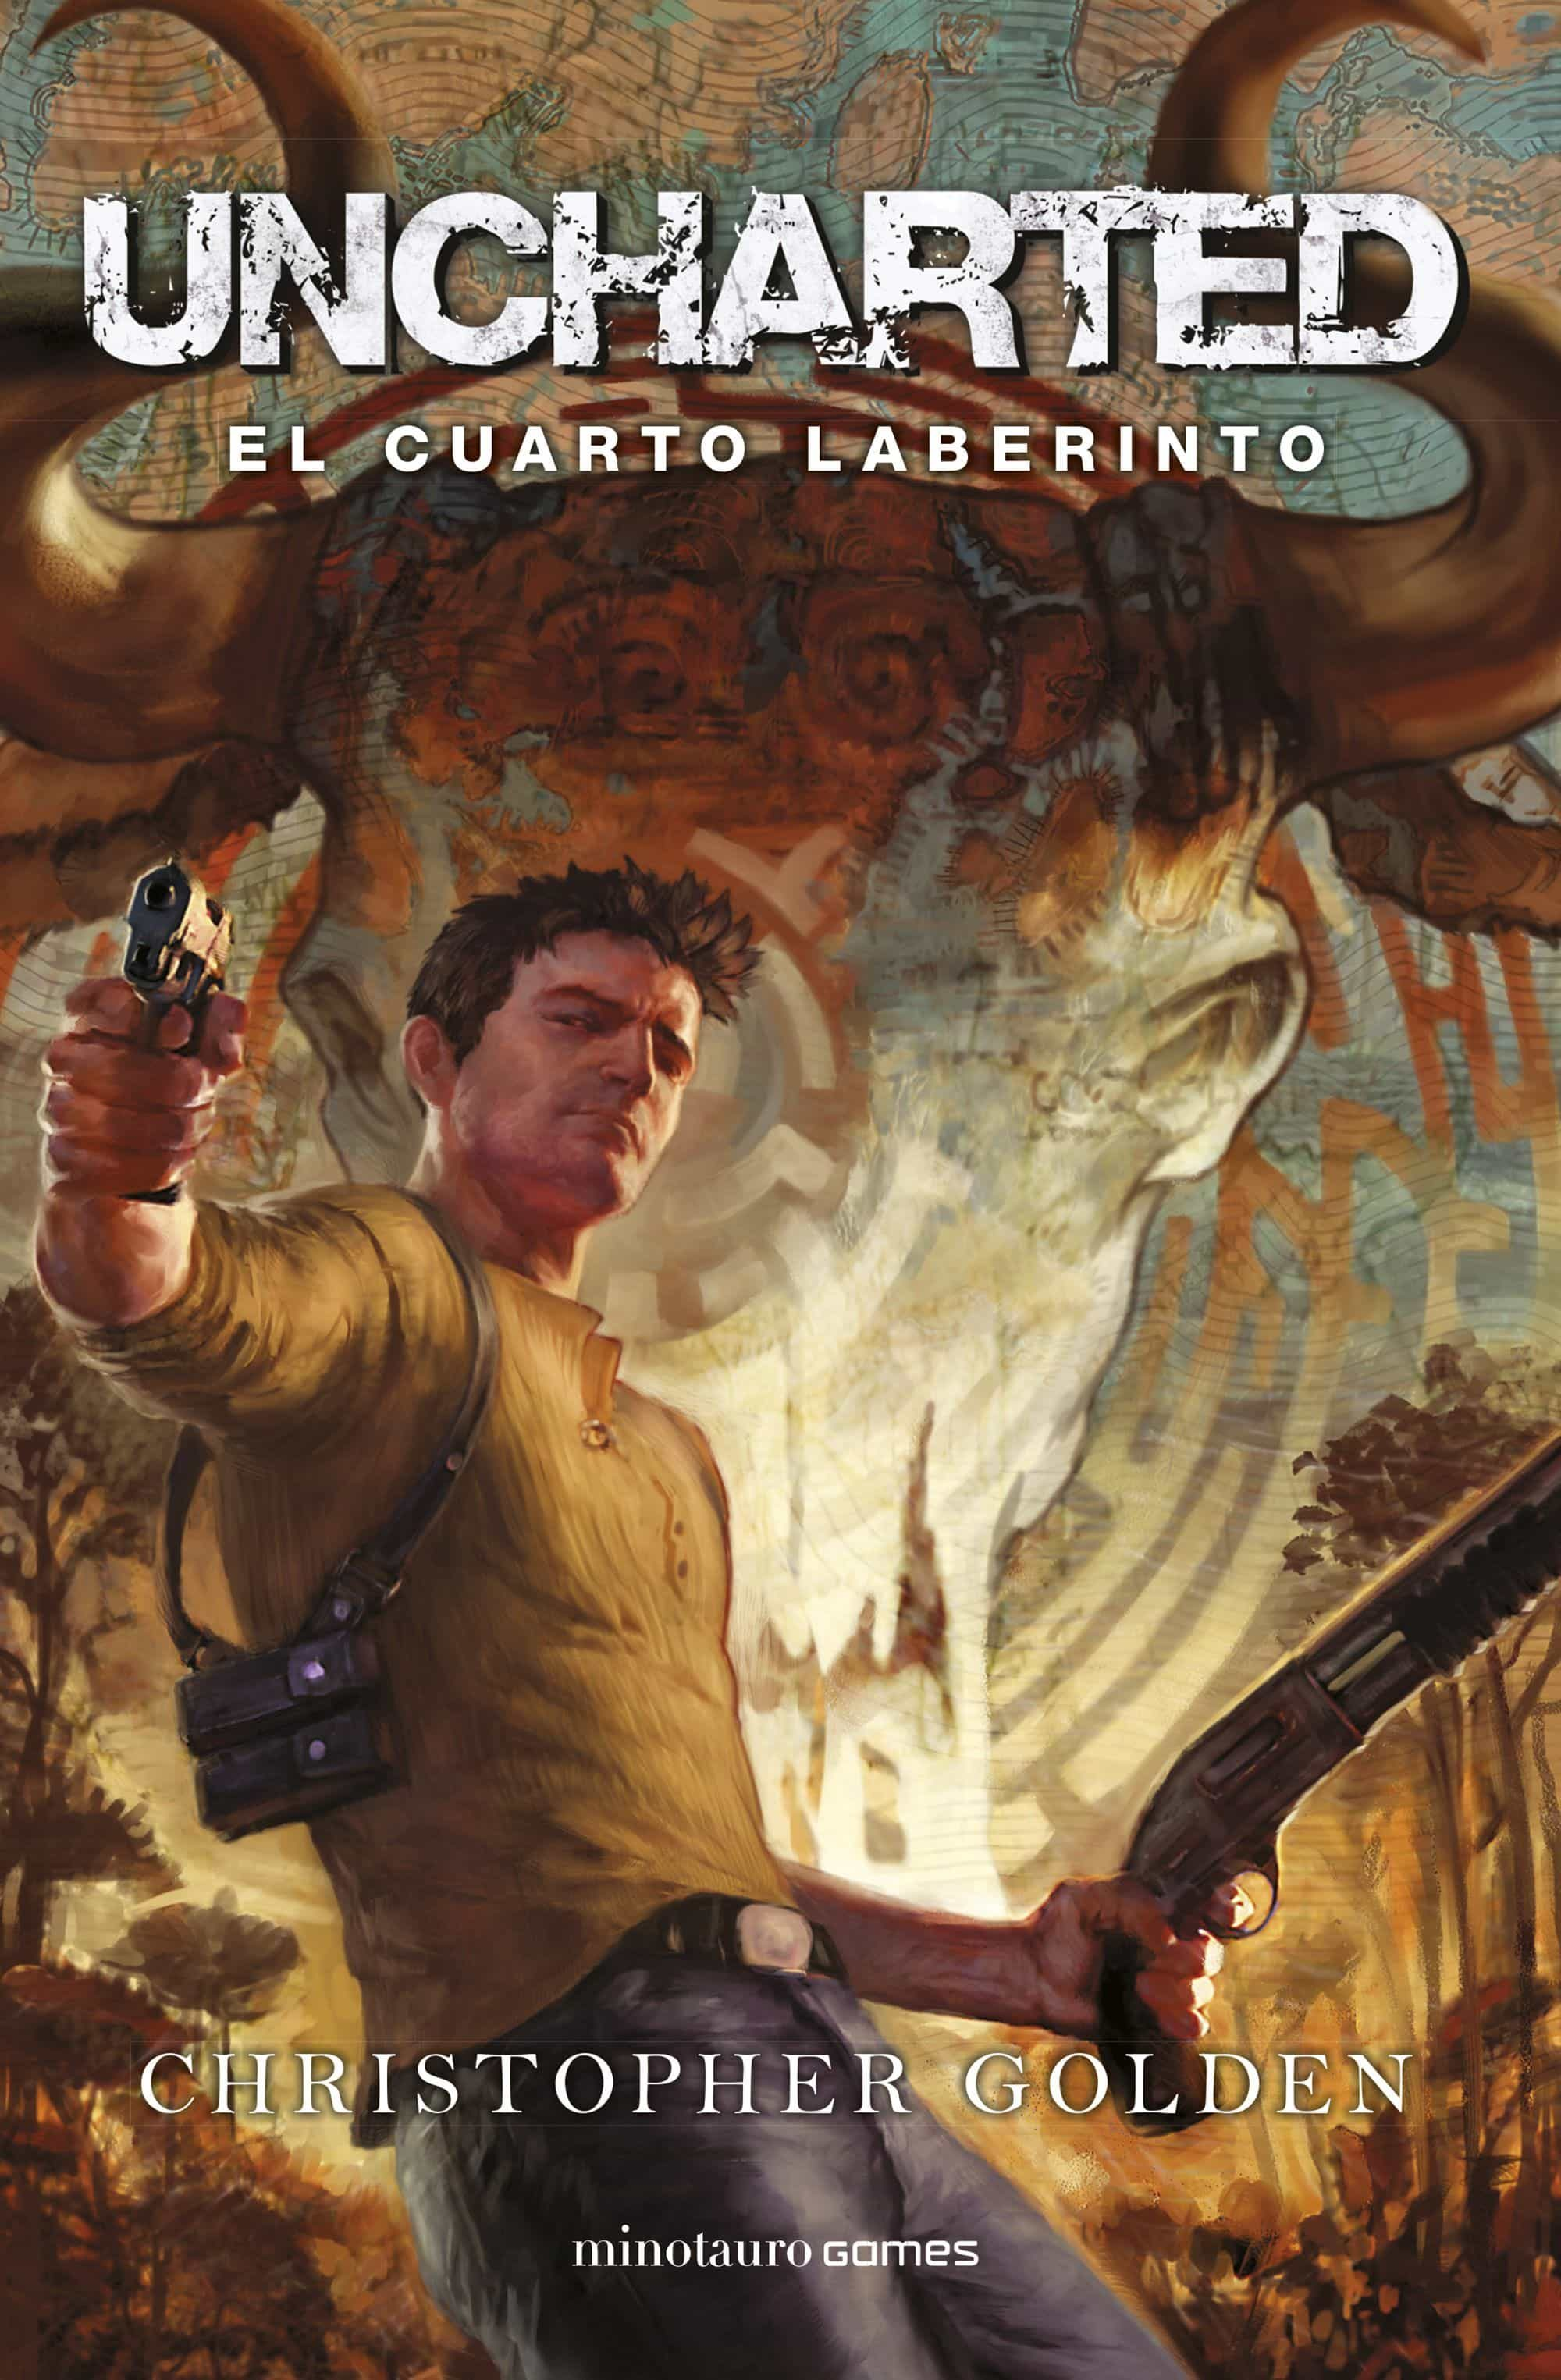 uncharted: el cuarto laberinto-christopher golden-9788445005491